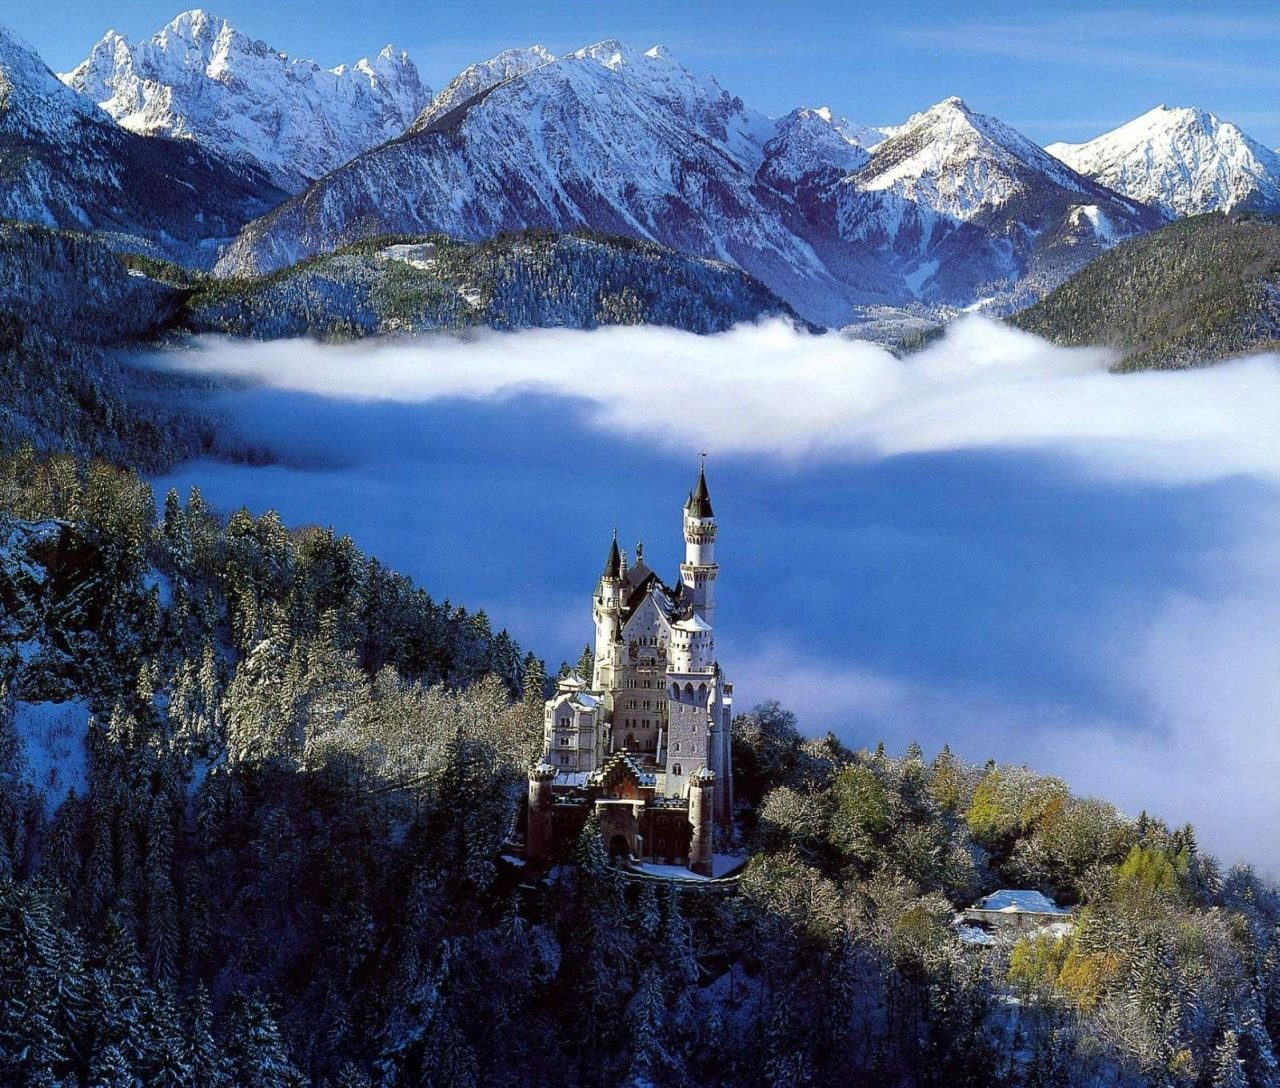 The Swan King's Castles Neuschwanstein– Germany (9)